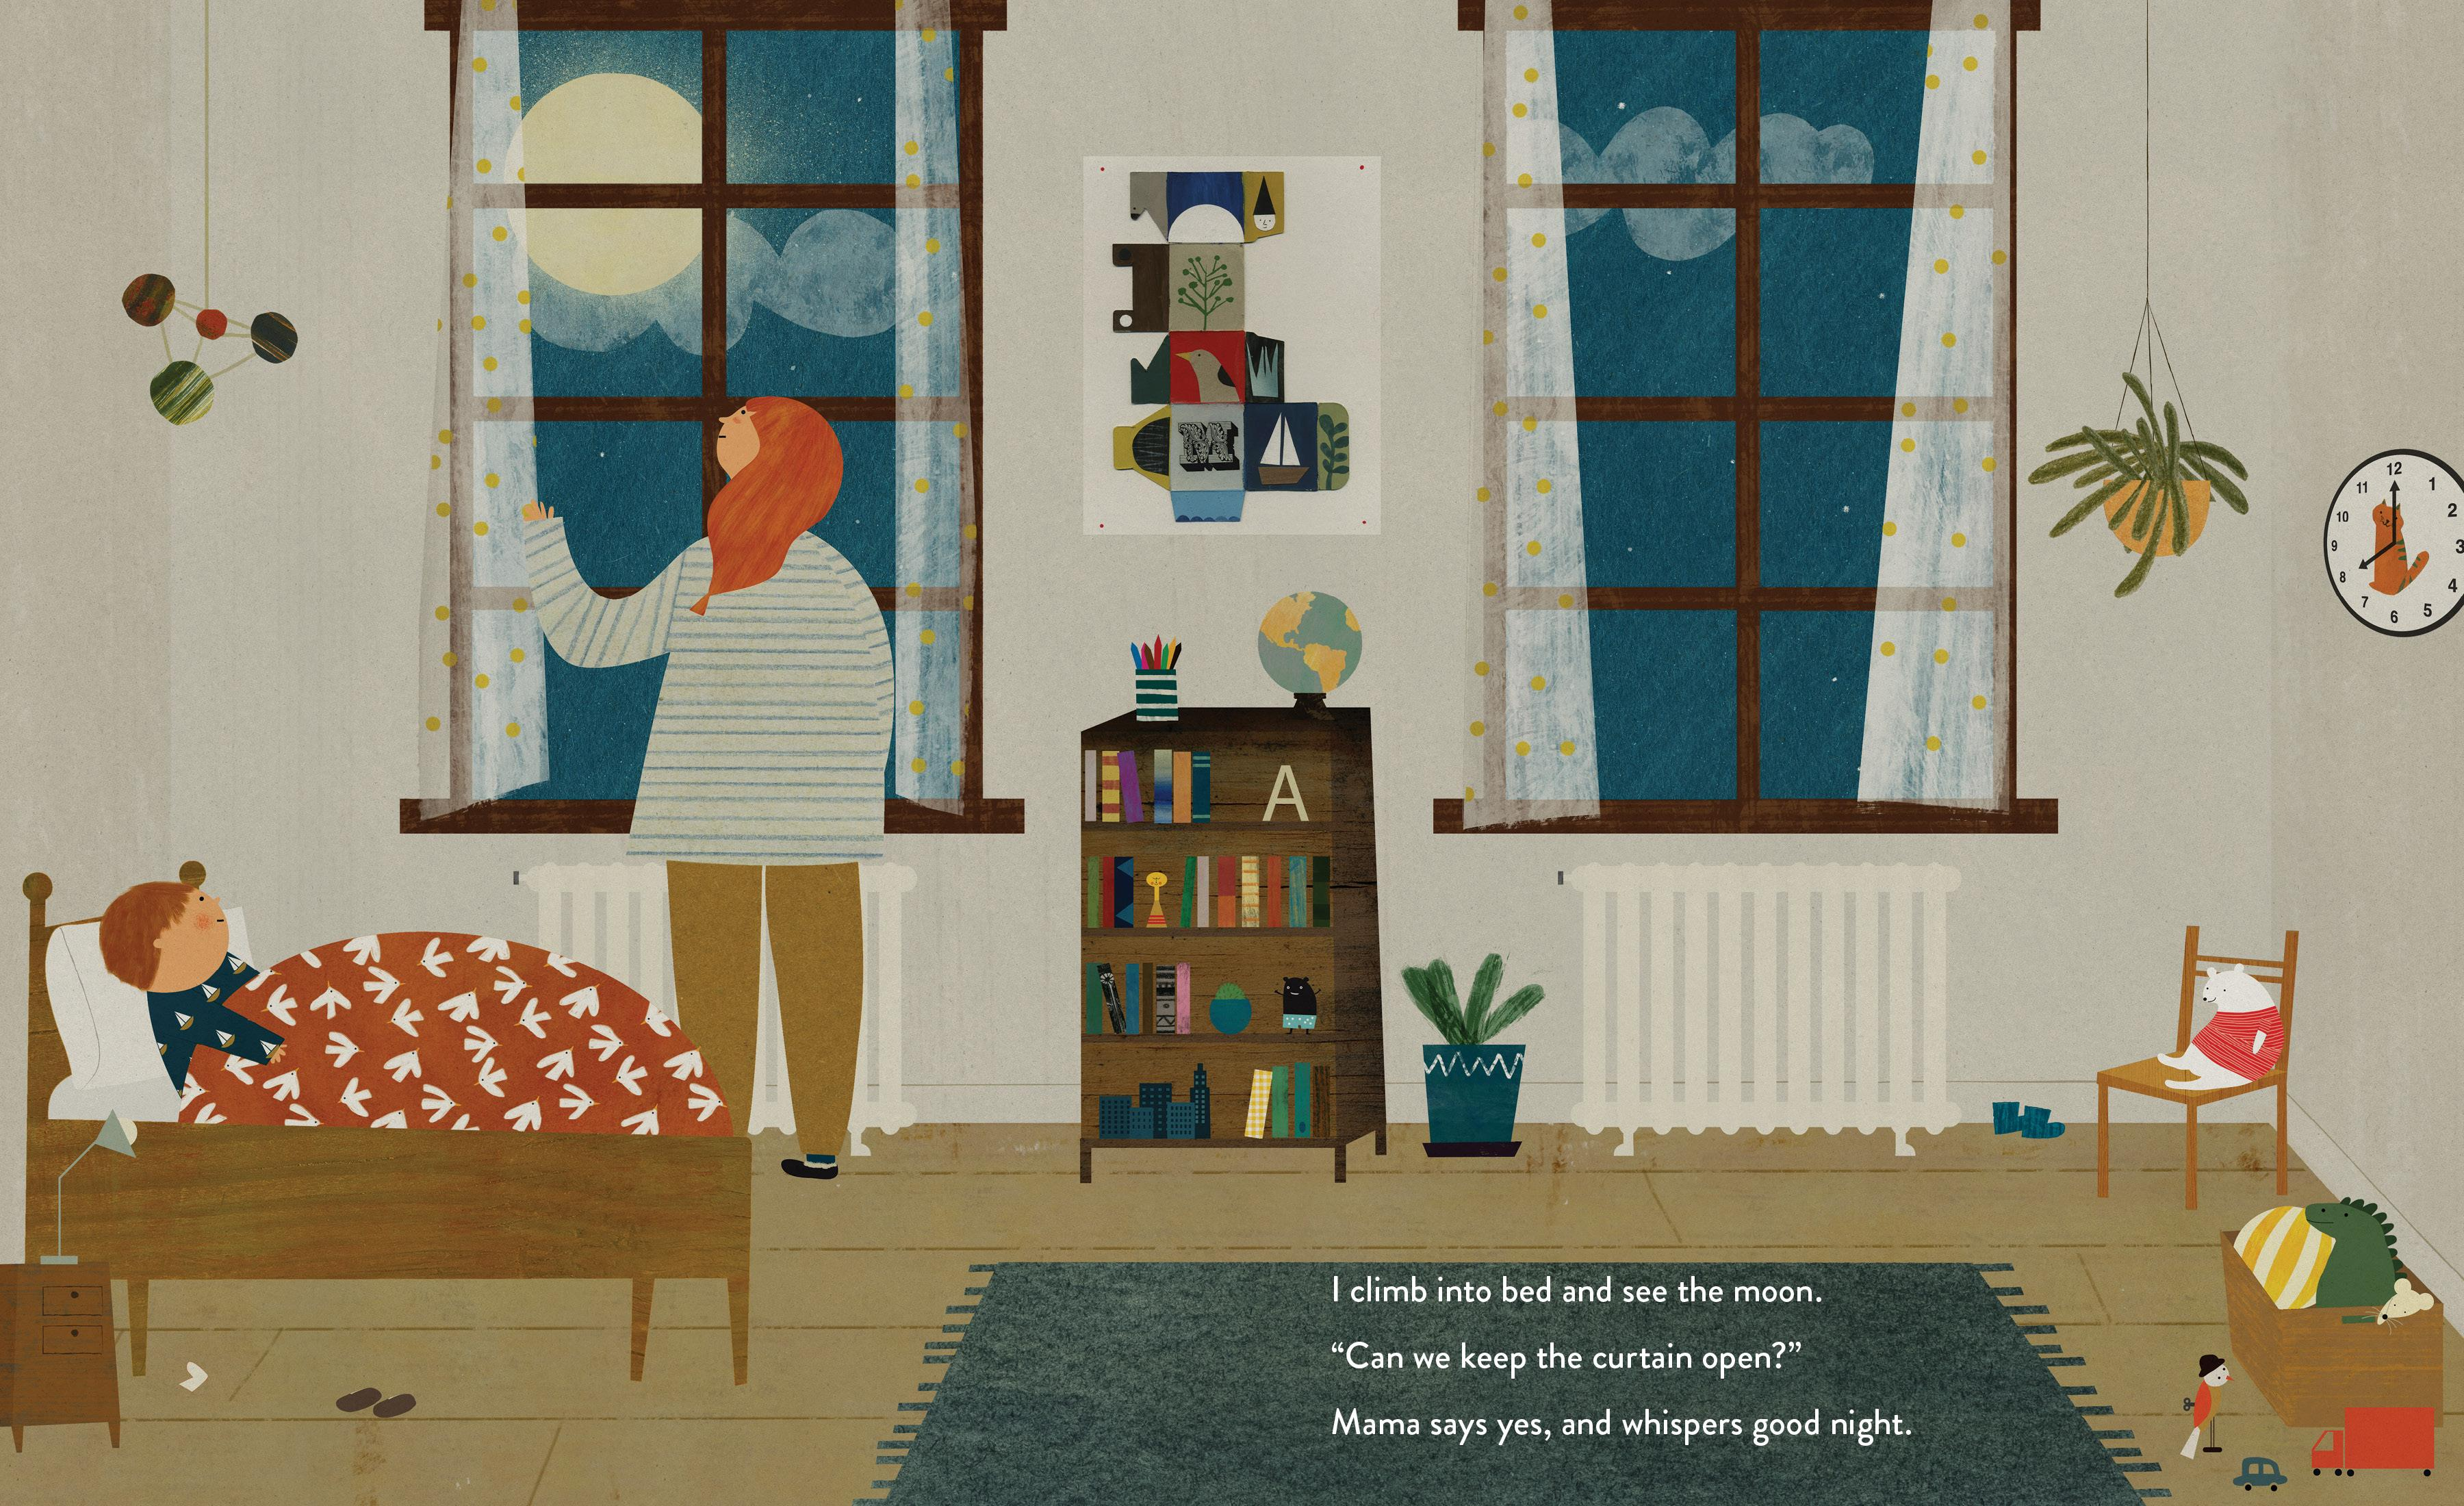 celebrate-picture-books-picture-book-review-city-moon-moon-shines-through-window